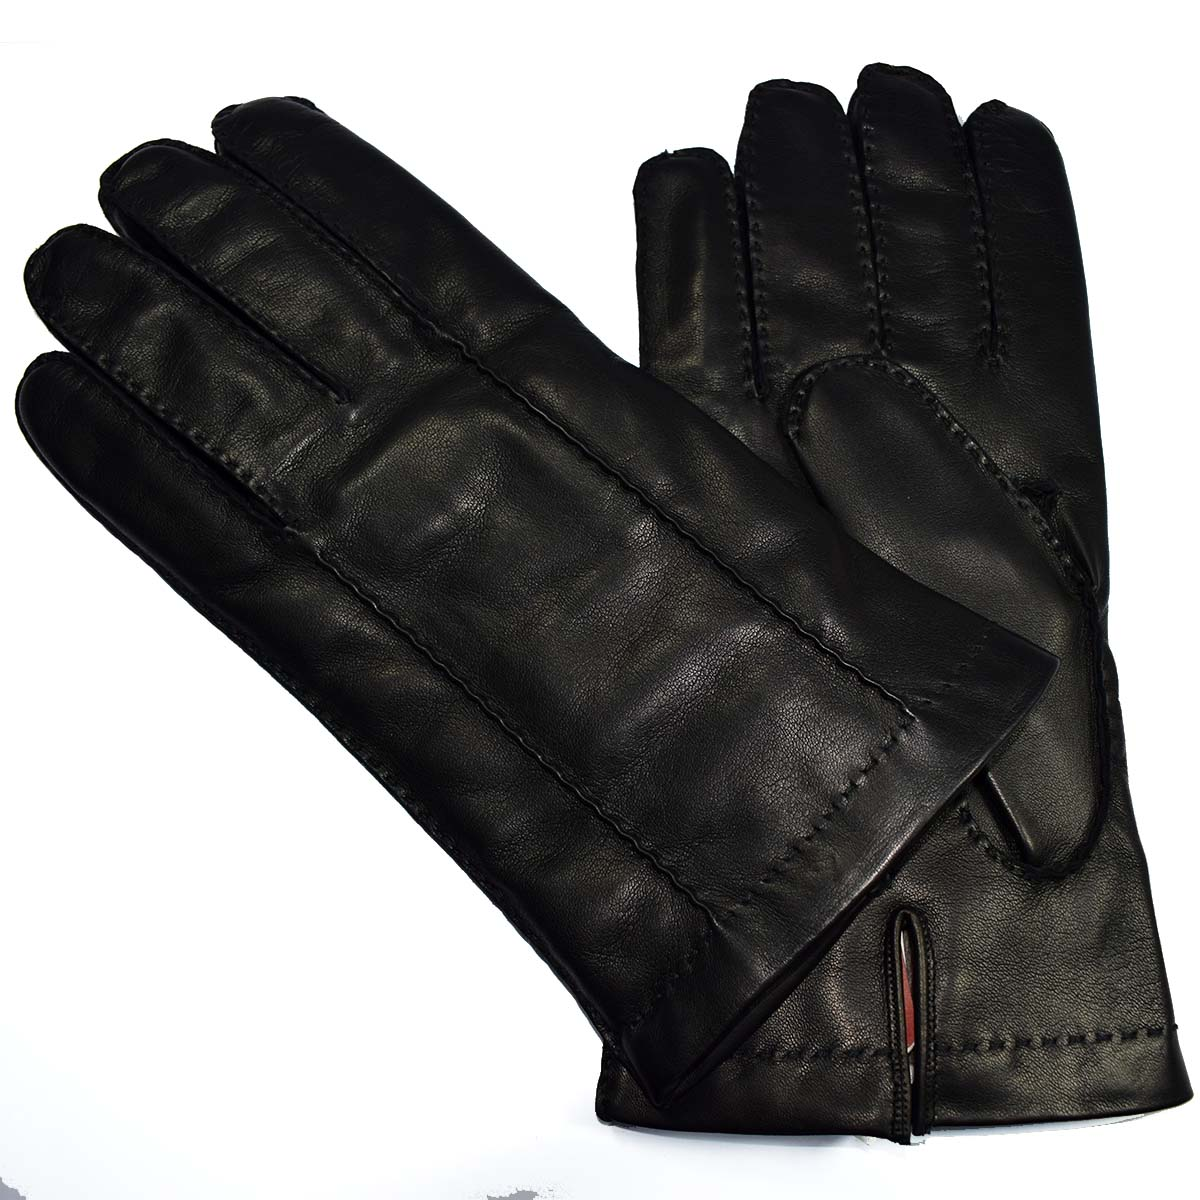 8a47 man cashmere gloves by Bottega Fiorentina